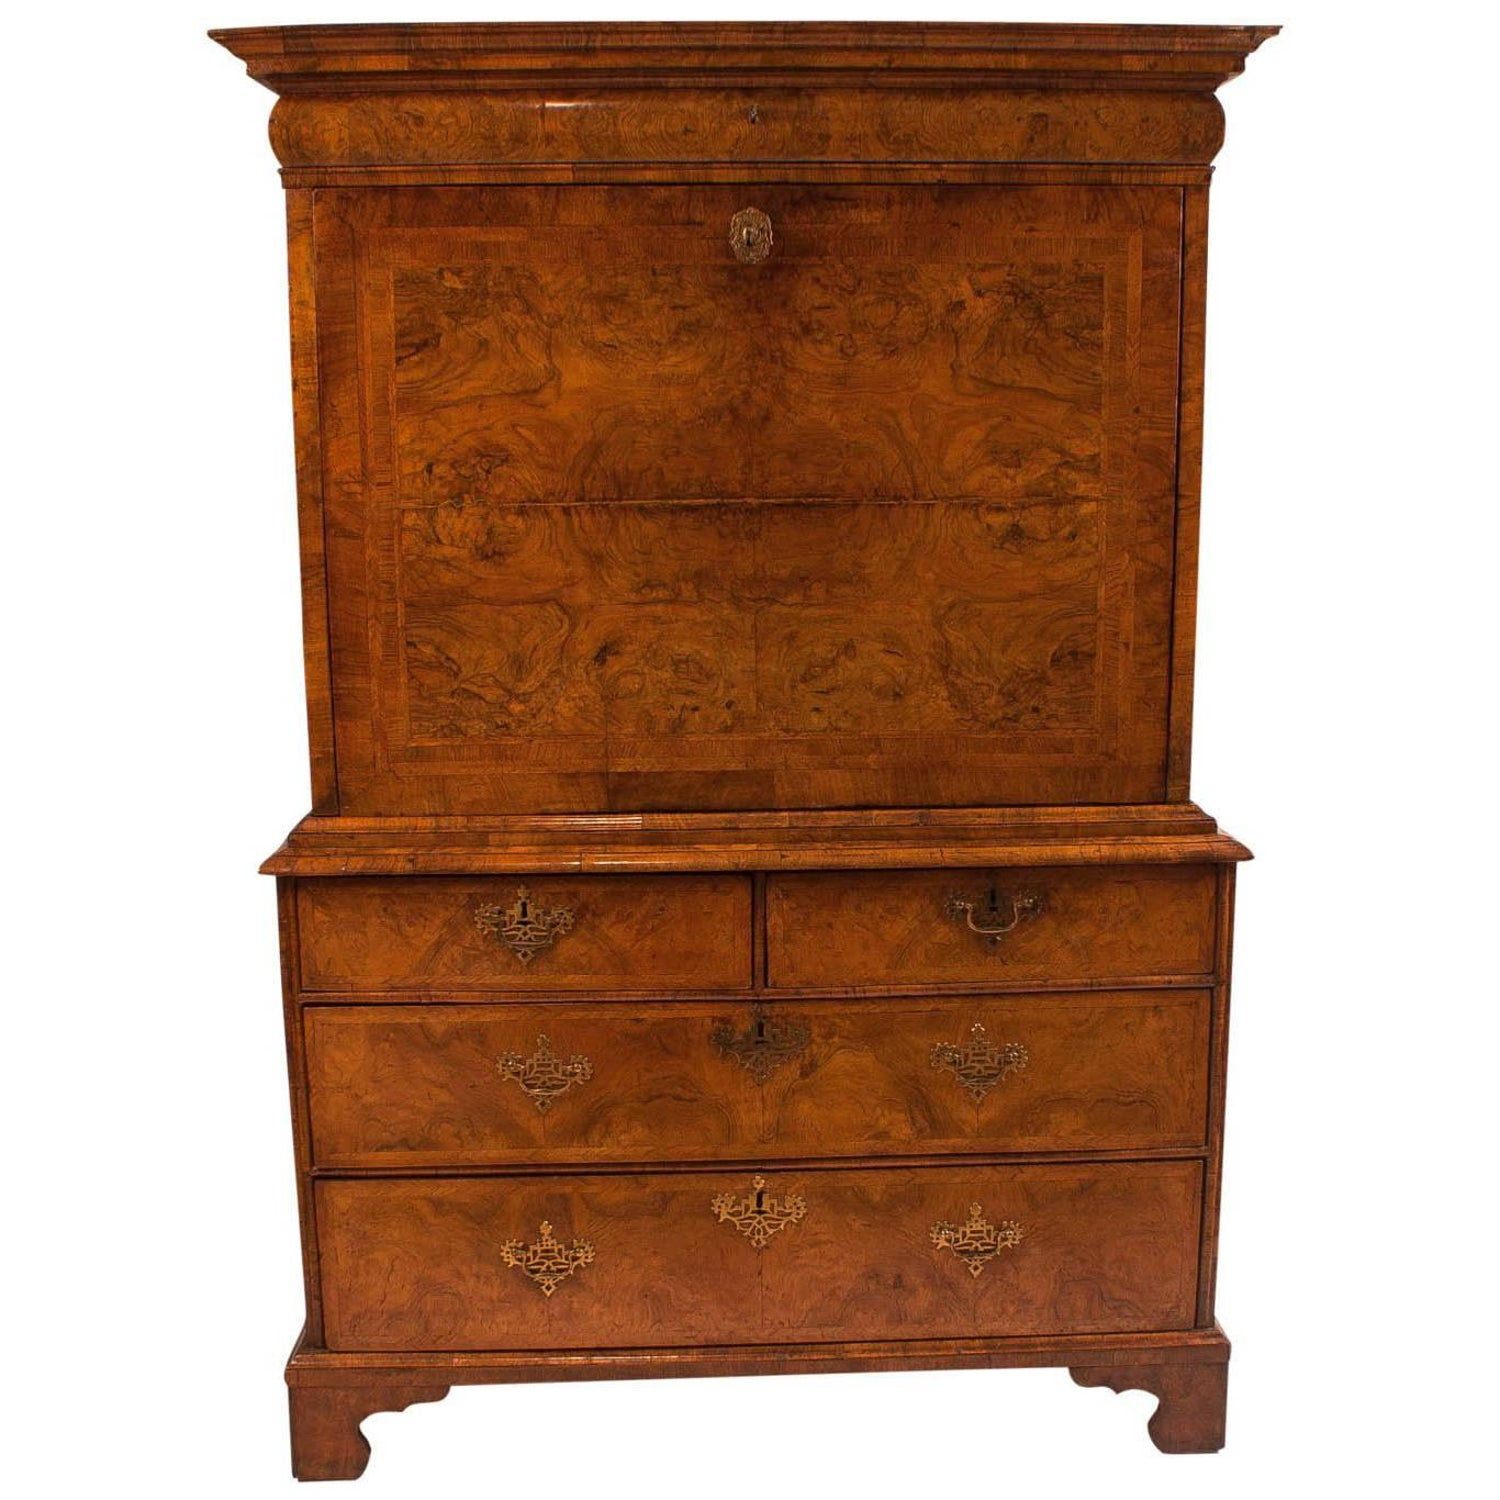 Queen Anne Walnut Secretary / Escritoire England, circa 1710 - Queen Anne Furniture - 519 For Sale At 1stdibs